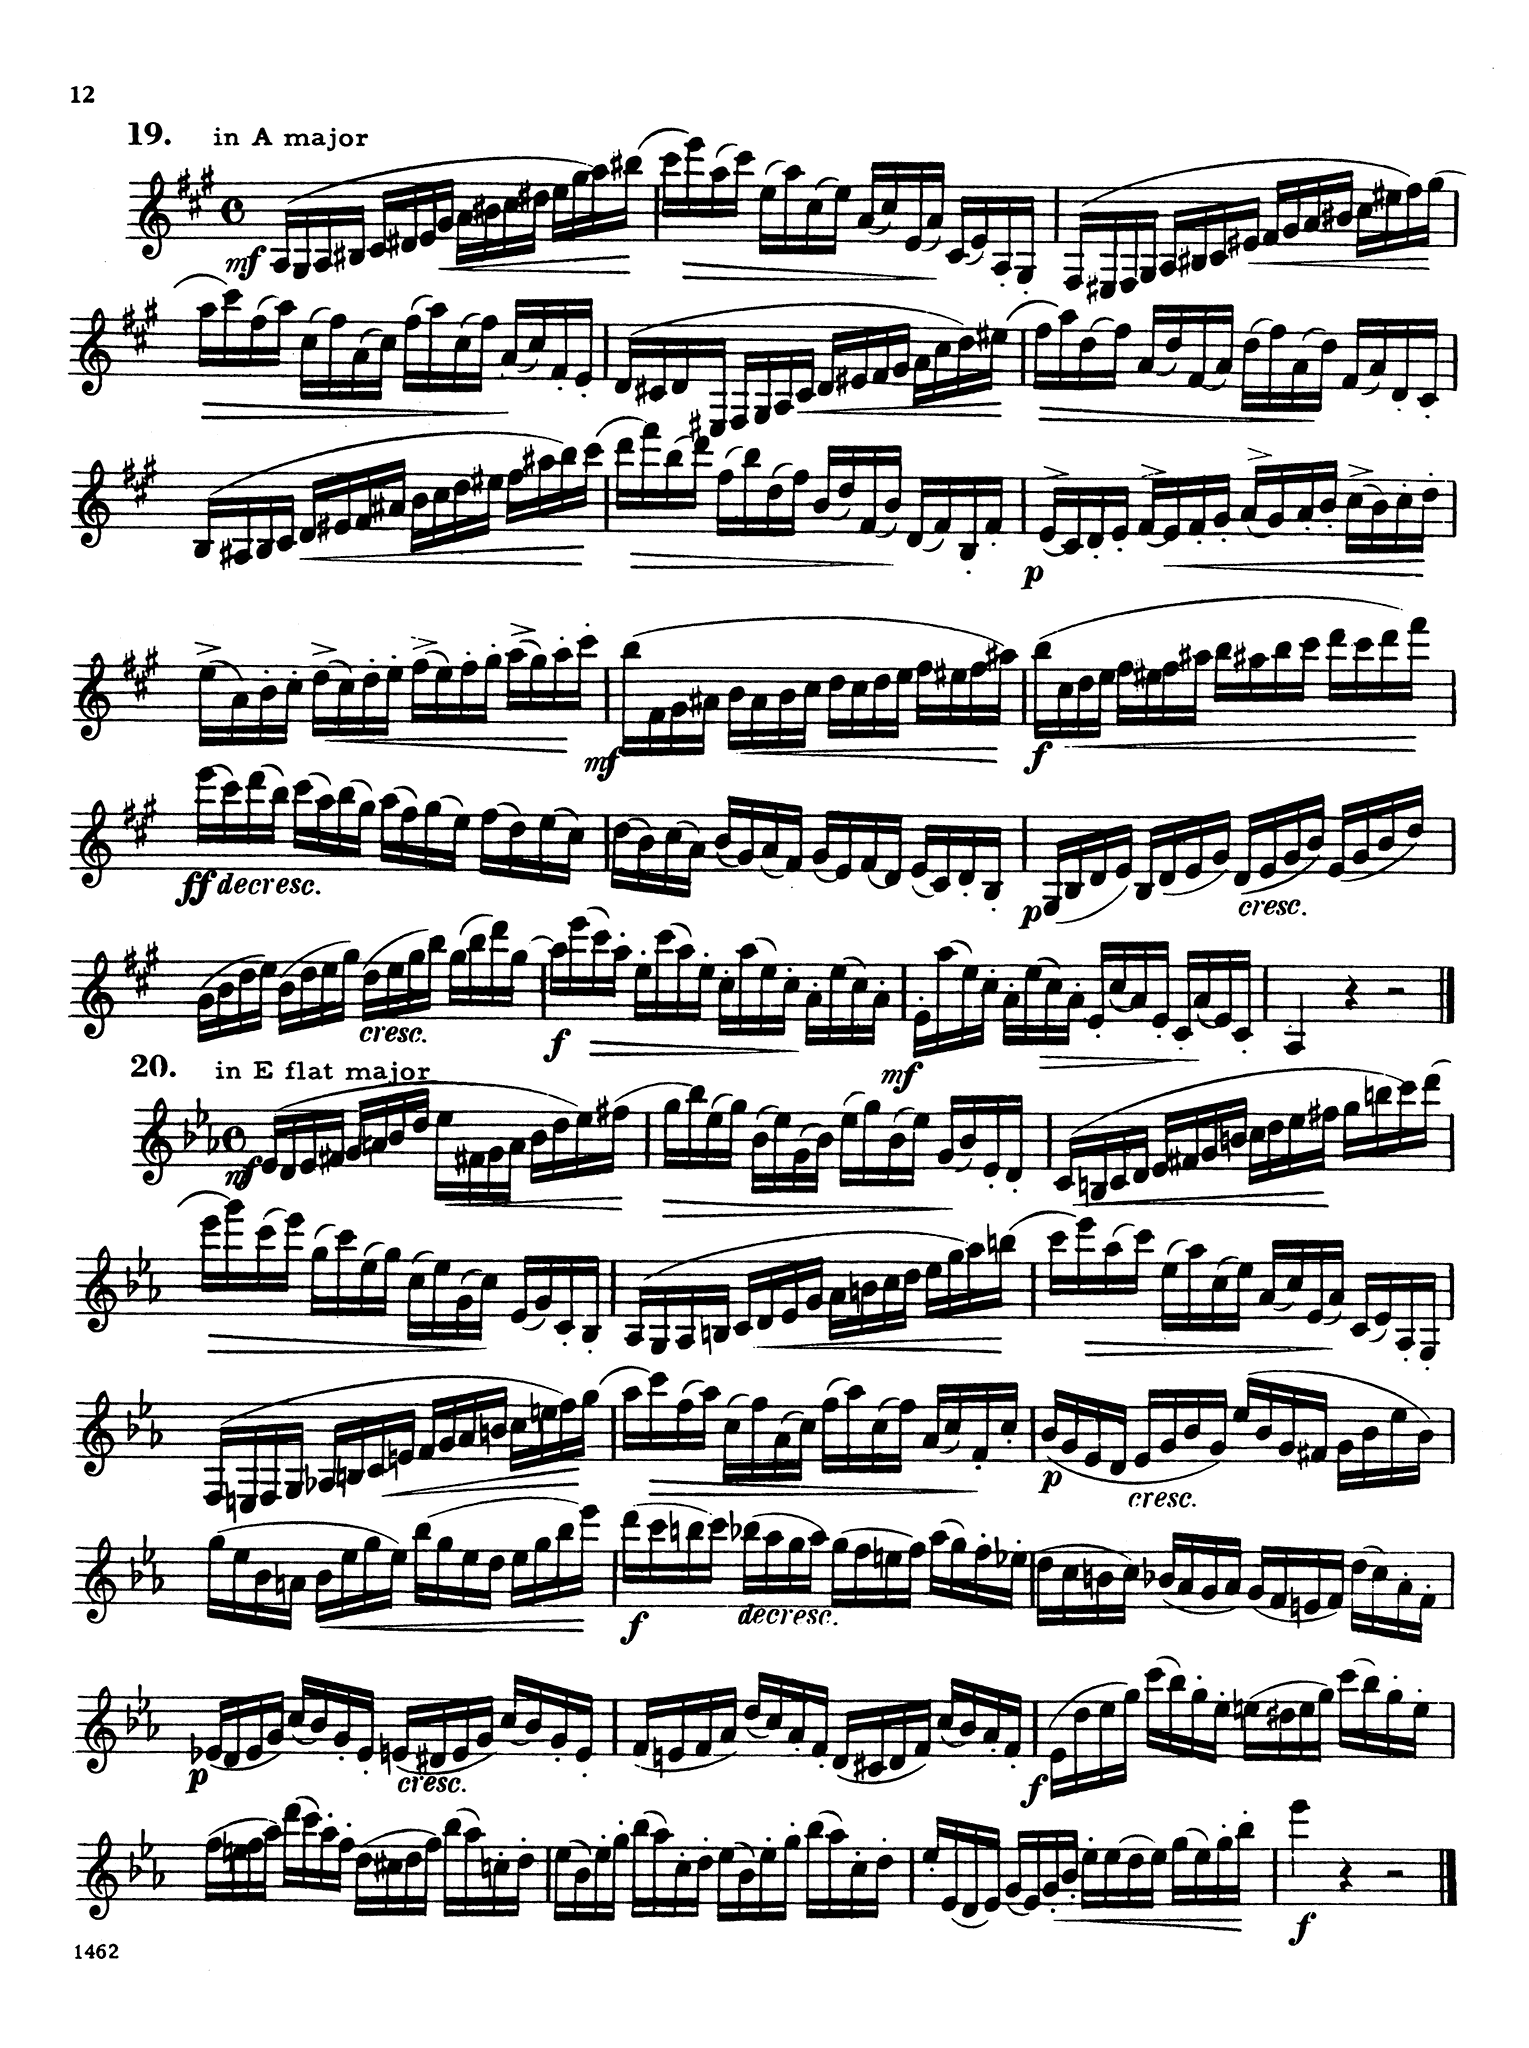 416 Progressive Studies for Clarinet, Book 3 Page 12